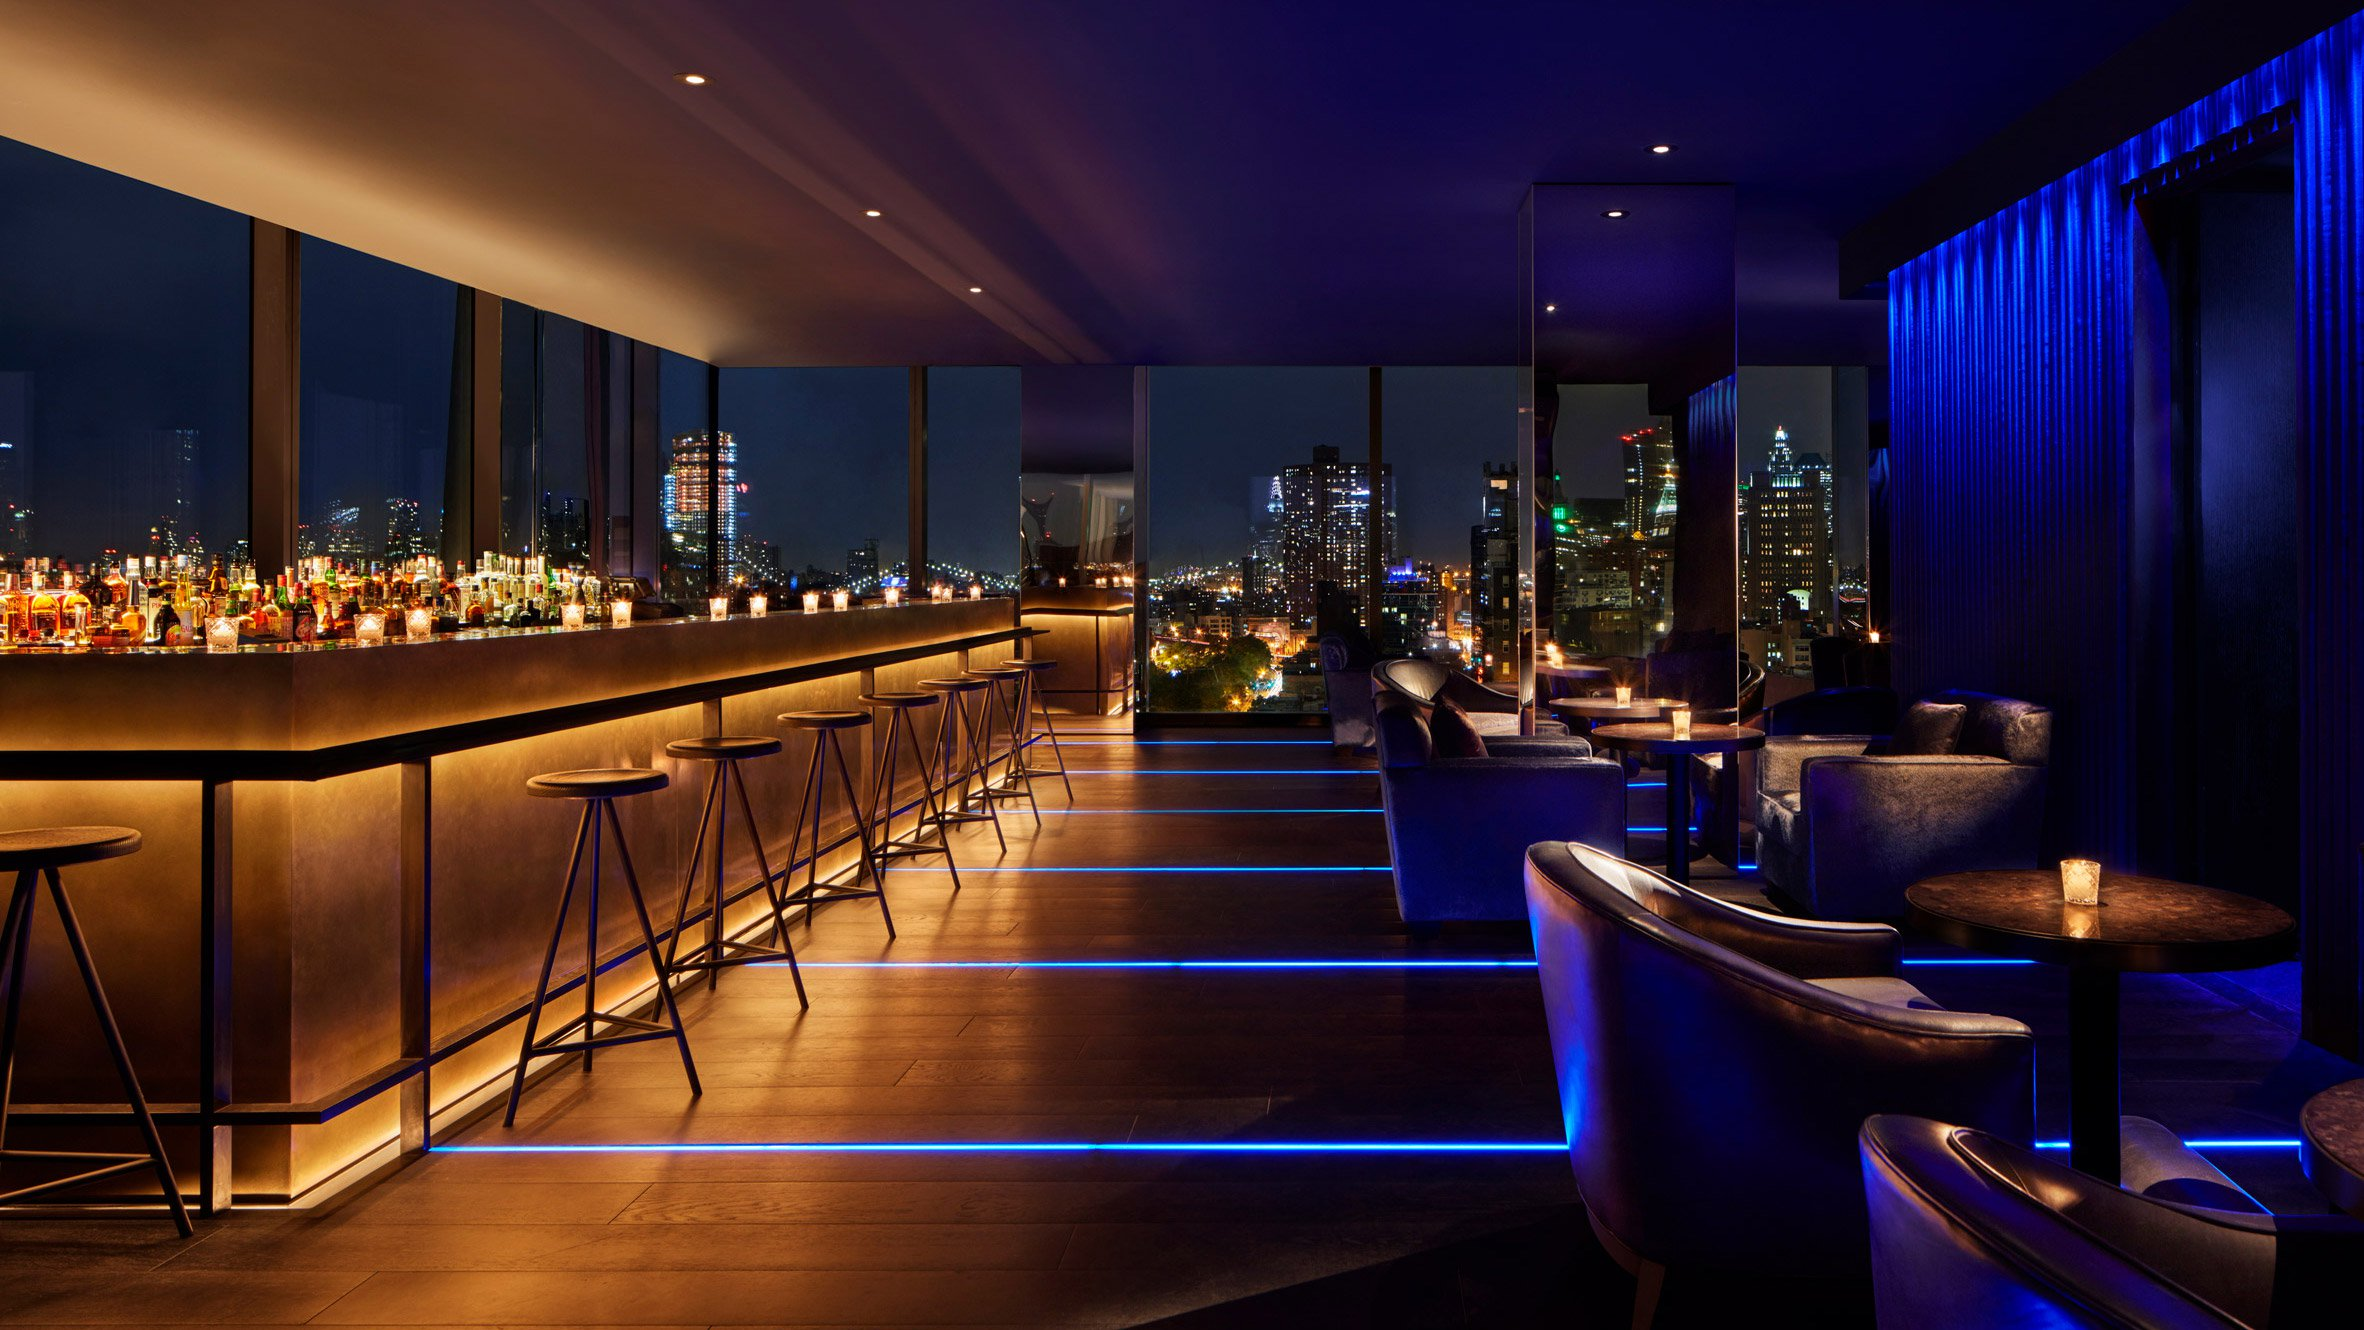 Ian Schrager S New Brand Public To Make June Debut In New